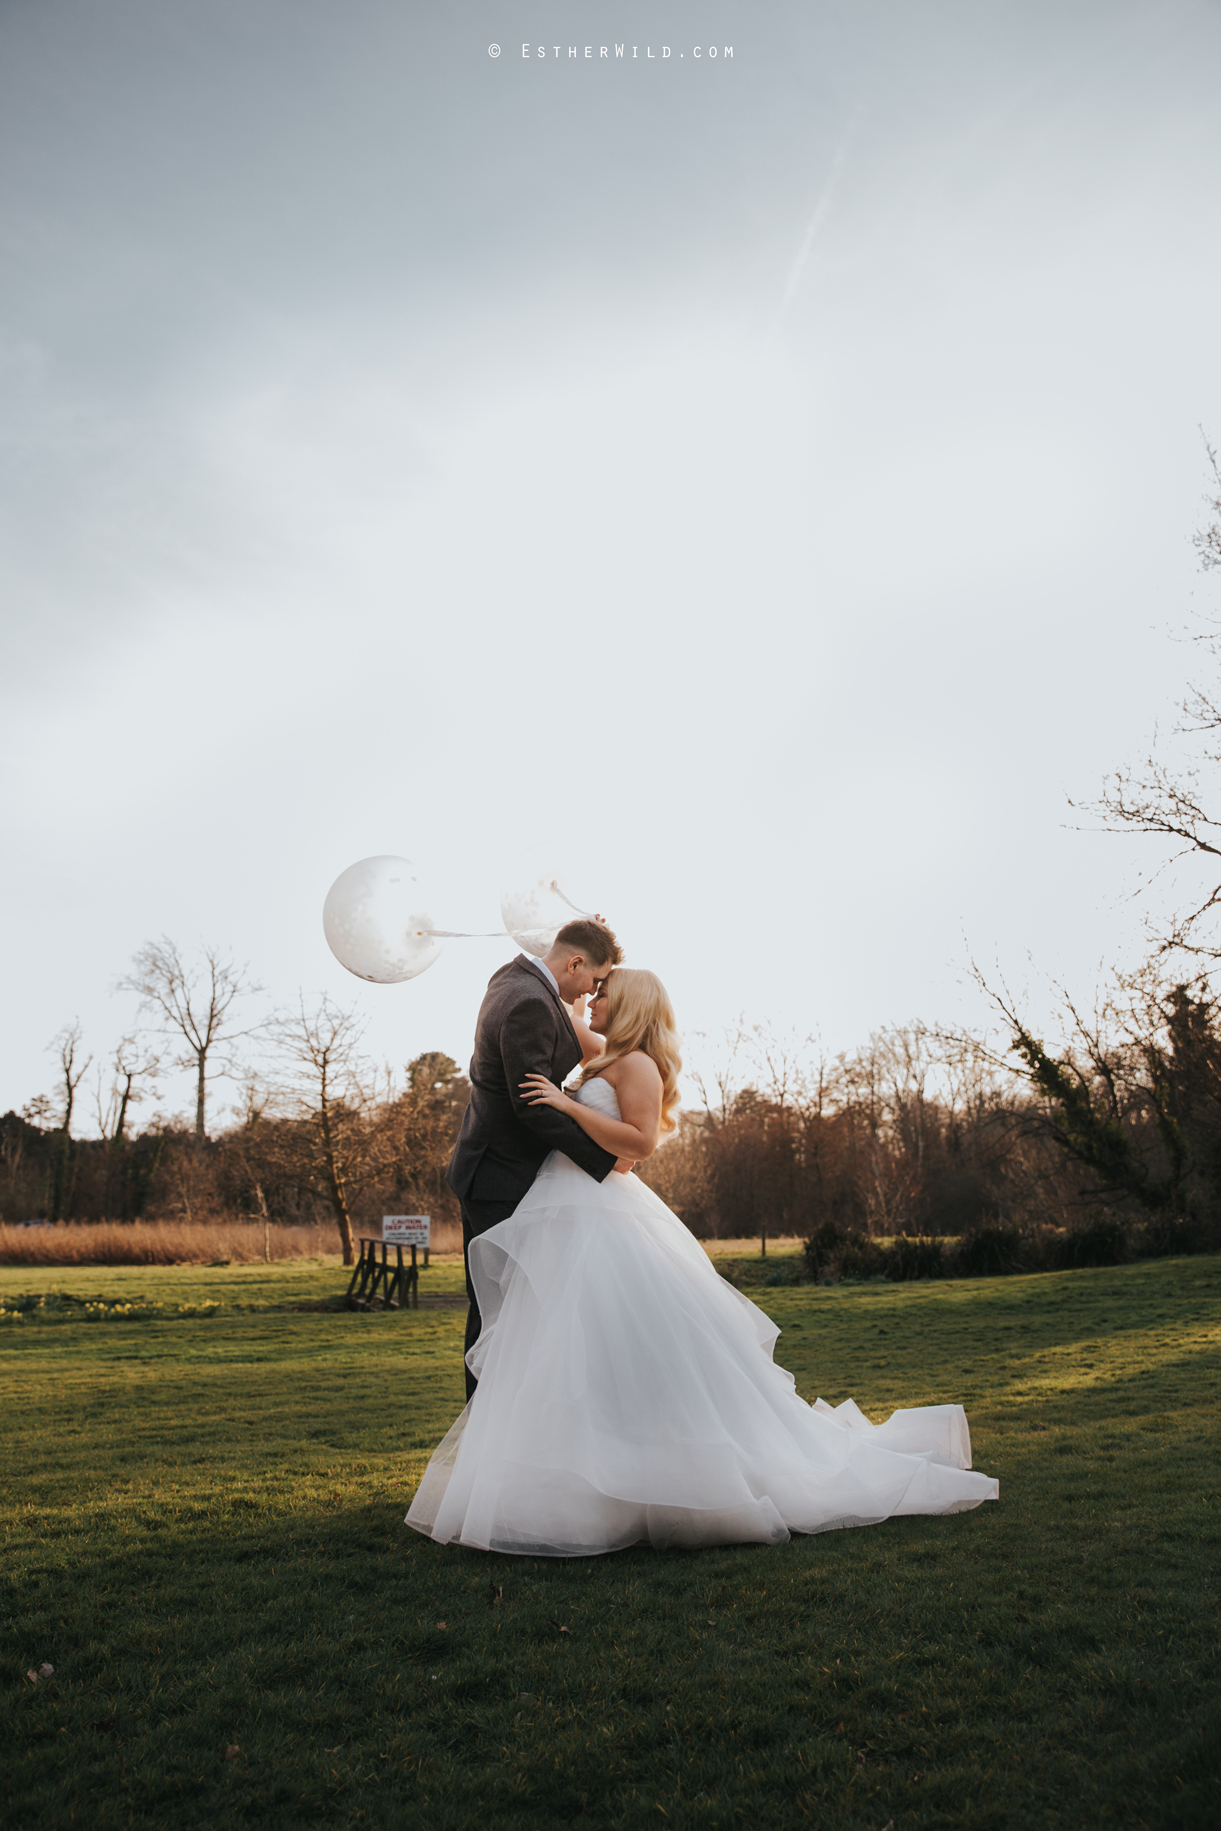 Norfolk_Mead_Hotel_Norwich_Wedding_Copyright_Esther_Wild_Photographer_IMG_2777.jpg